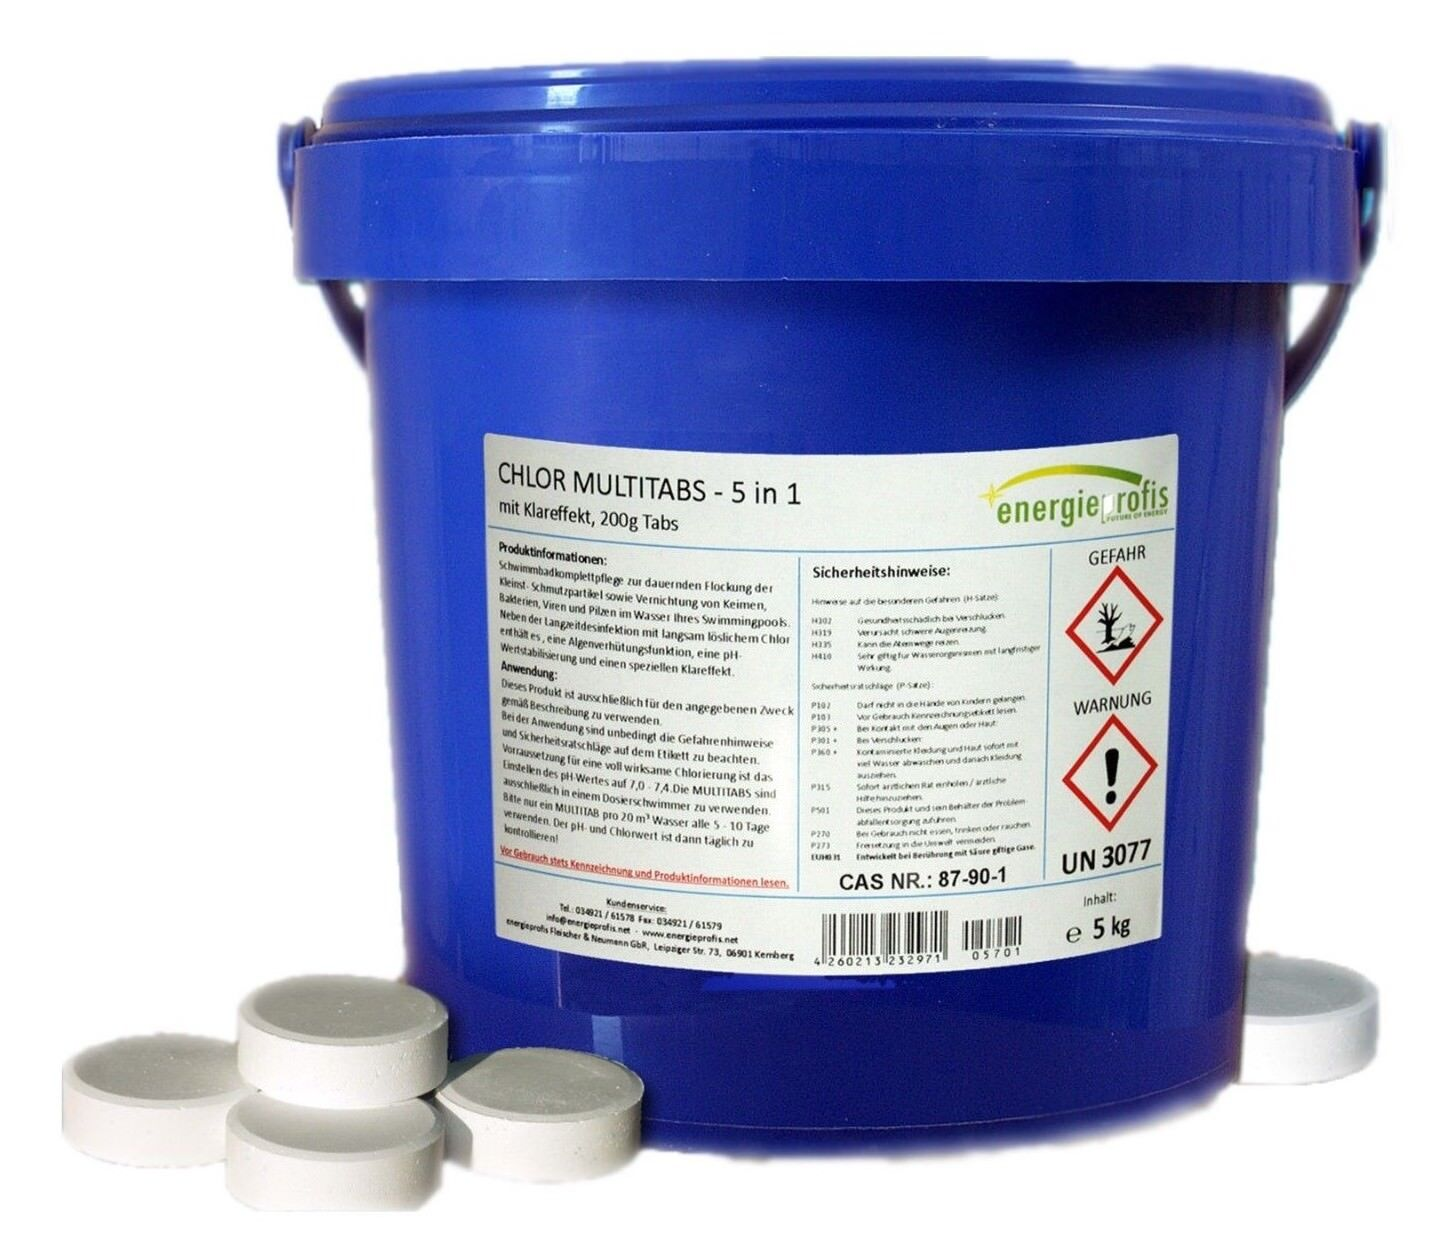 Multitabs Für Pool 10 Kg Multitabs 200g 5 In 1 Chlor Tabletten Desinfektion Pool